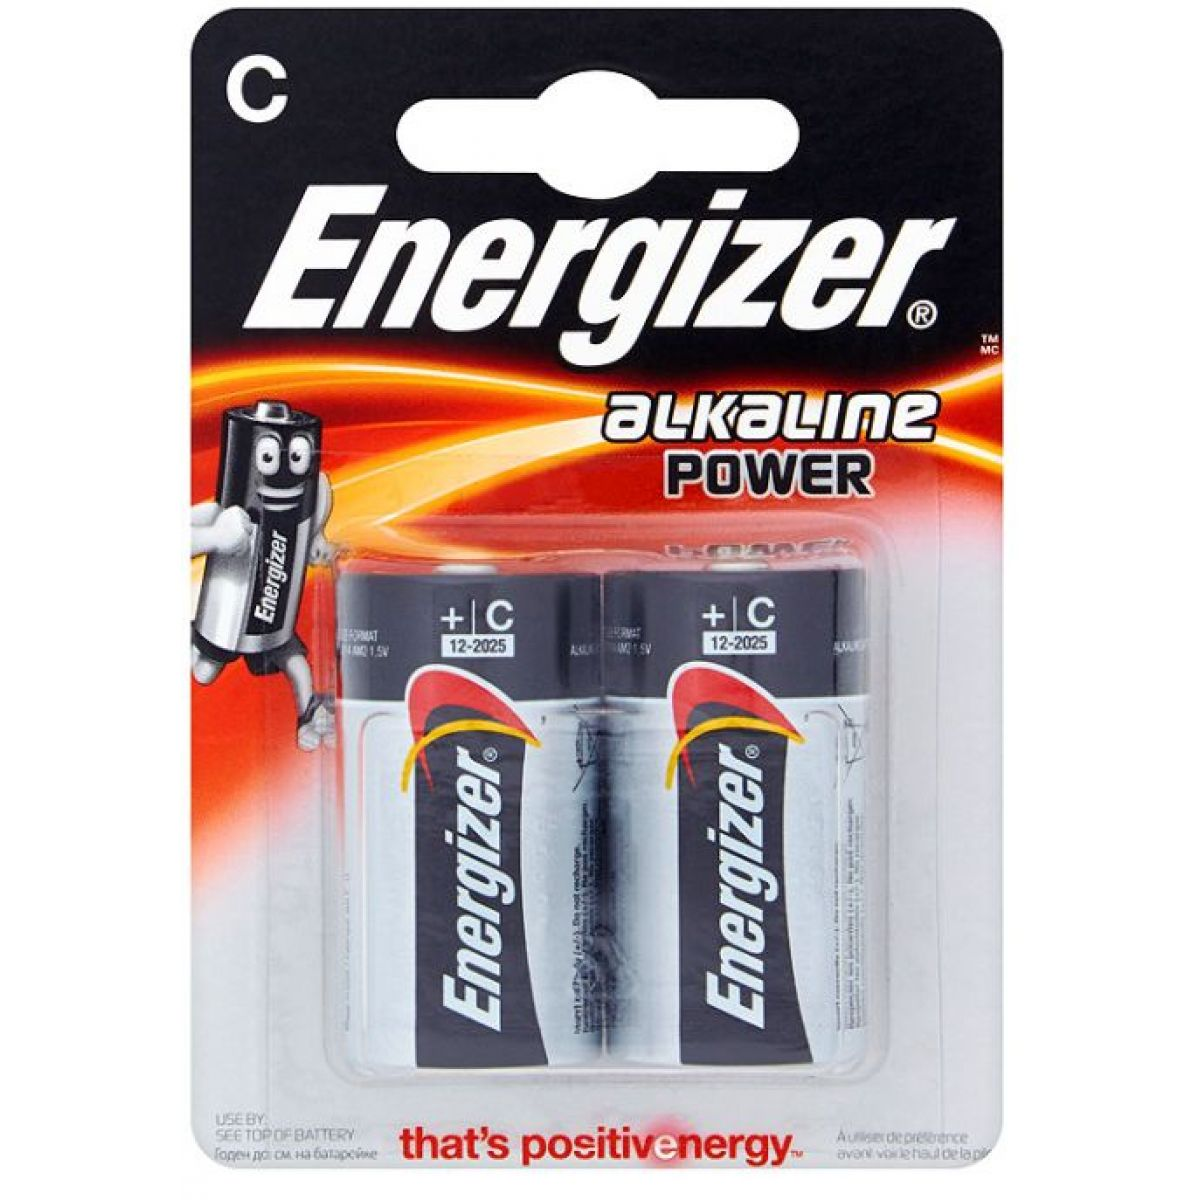 Energizer Alkaline Power C 2pack